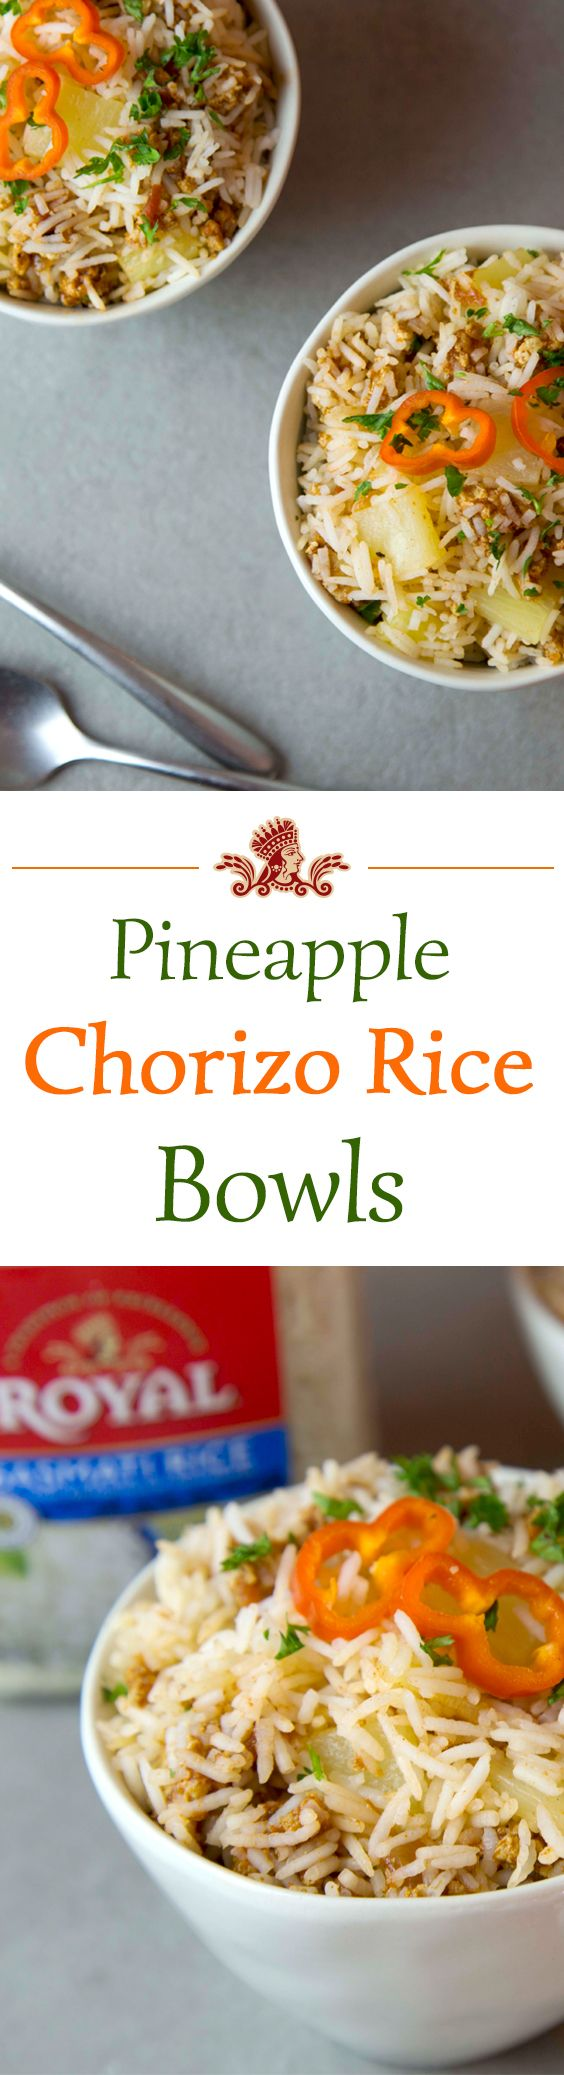 Want to try something different? How about a Pineapple Chorizo Rice Bowl made with Royal Basmati Rice.